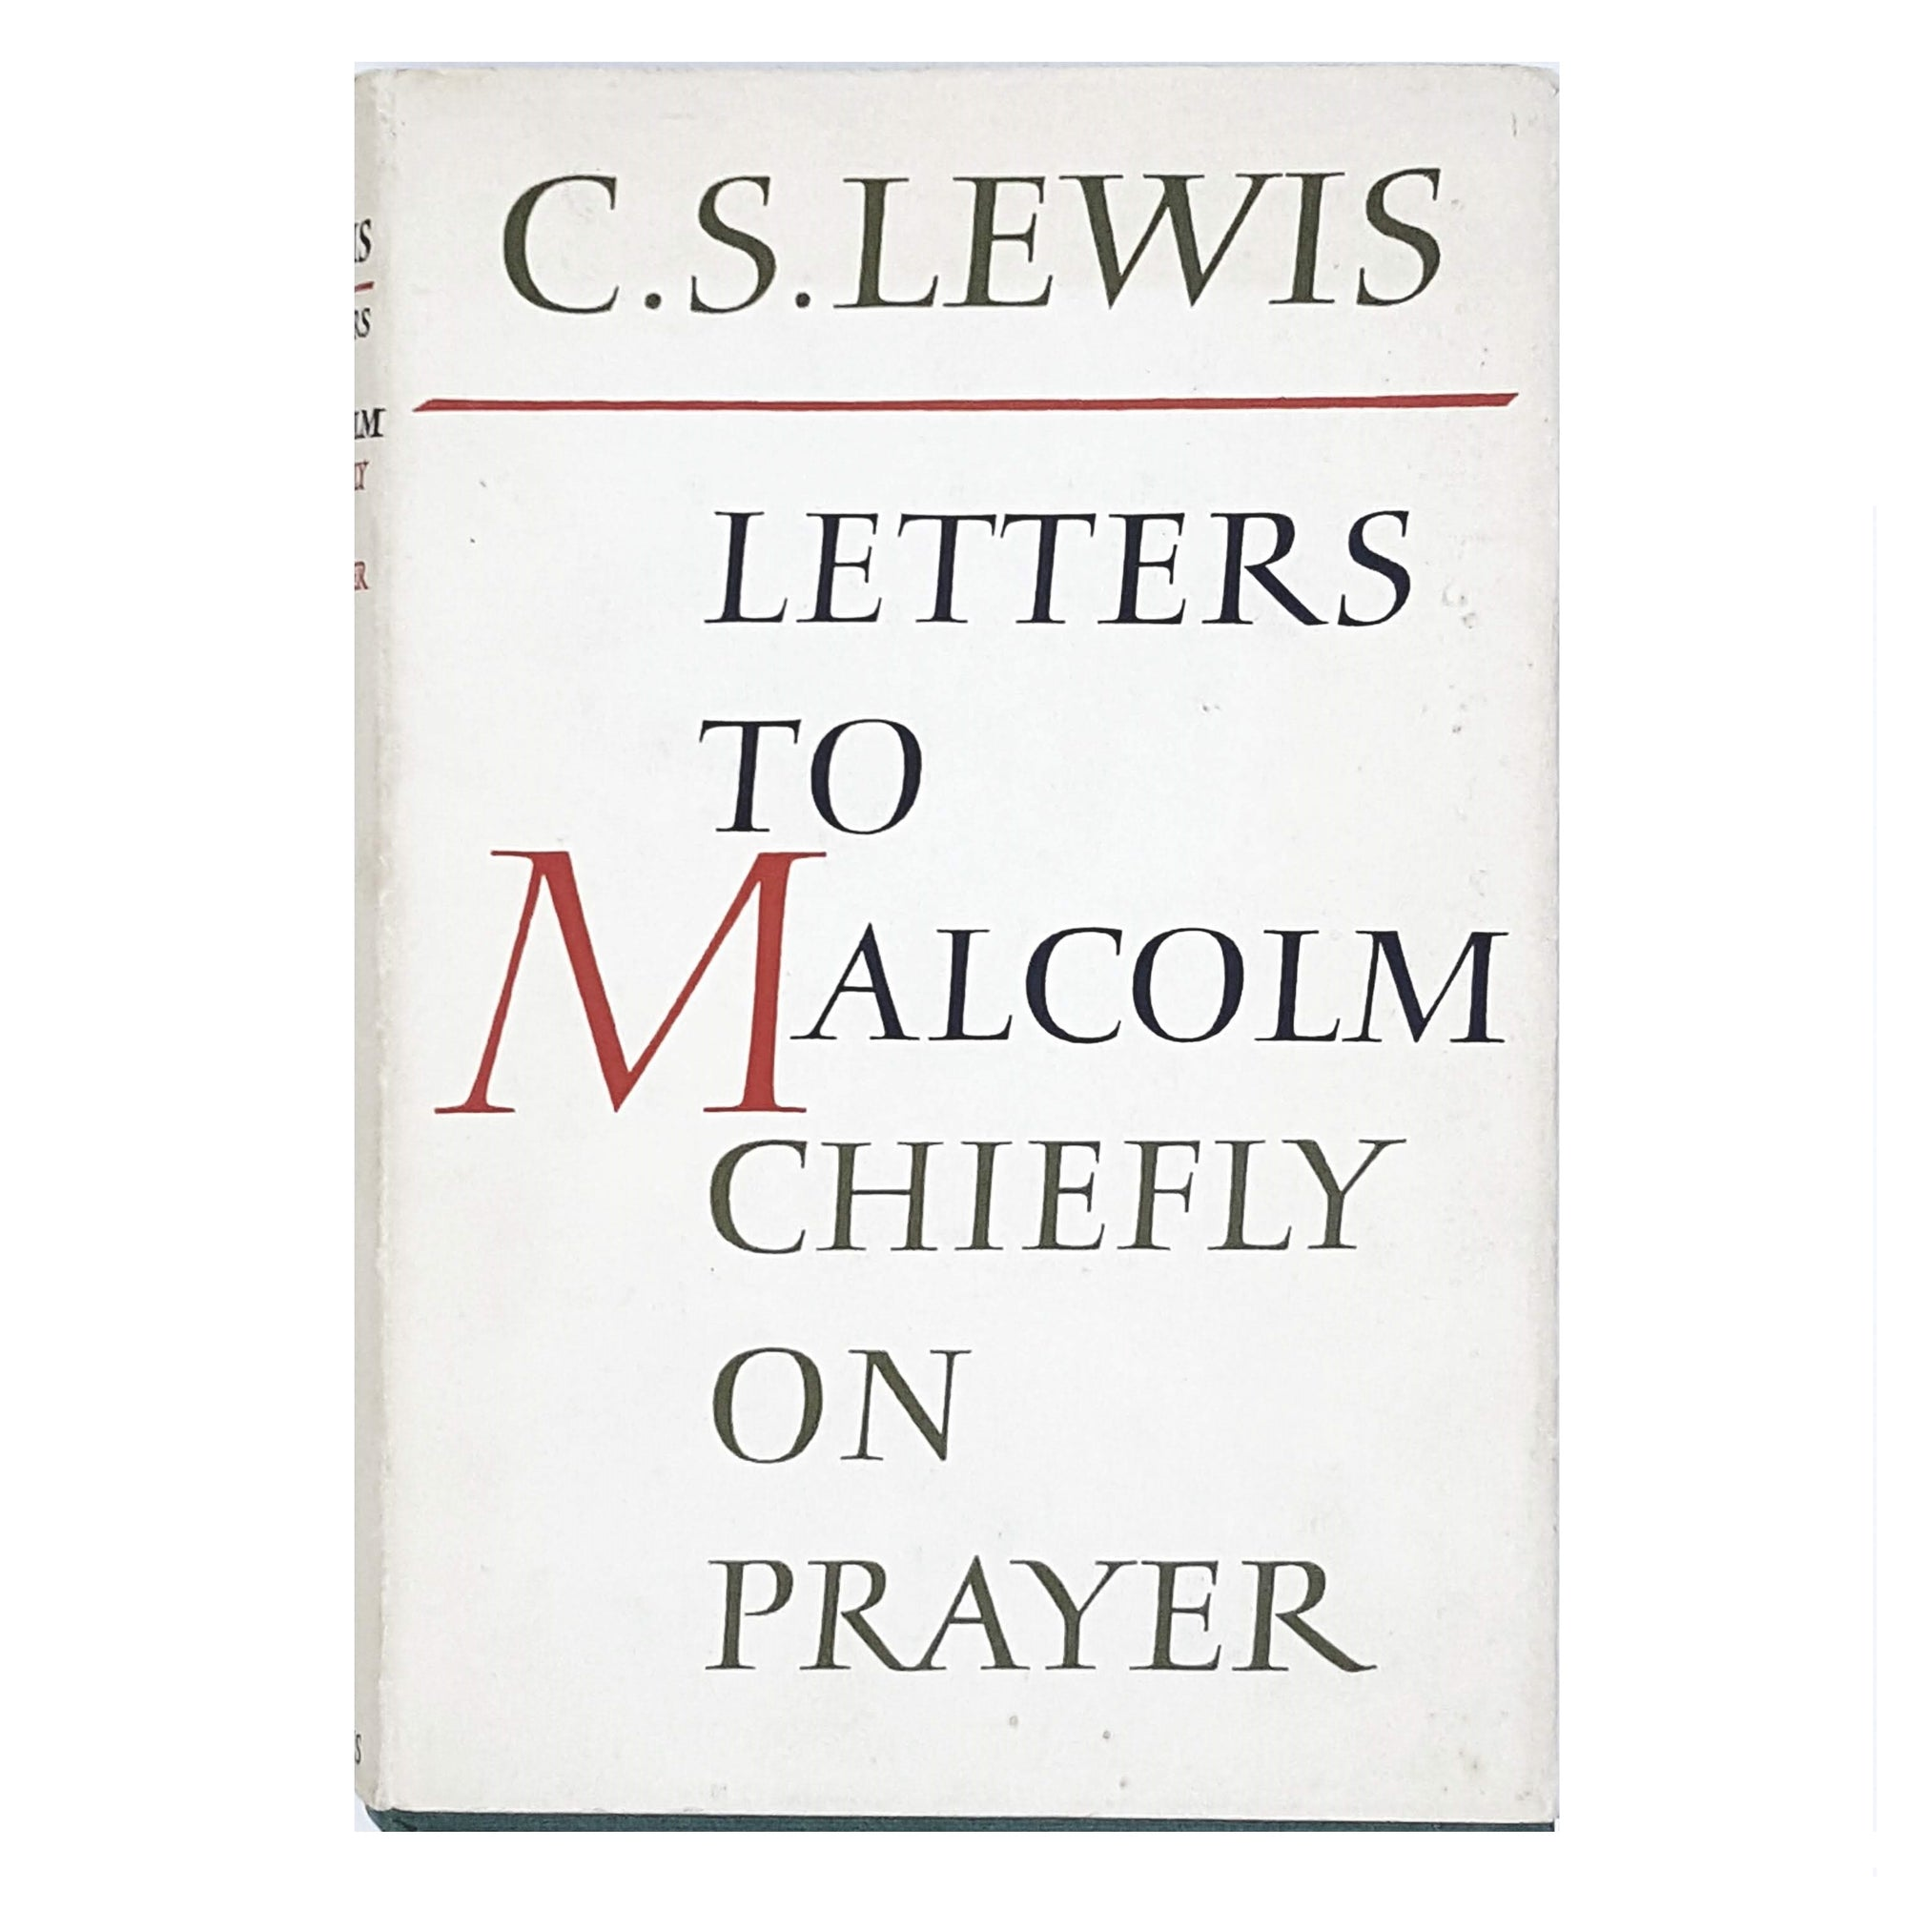 C. S. Lewis's Letters to Malcolm Chiefly on Prayer 1964